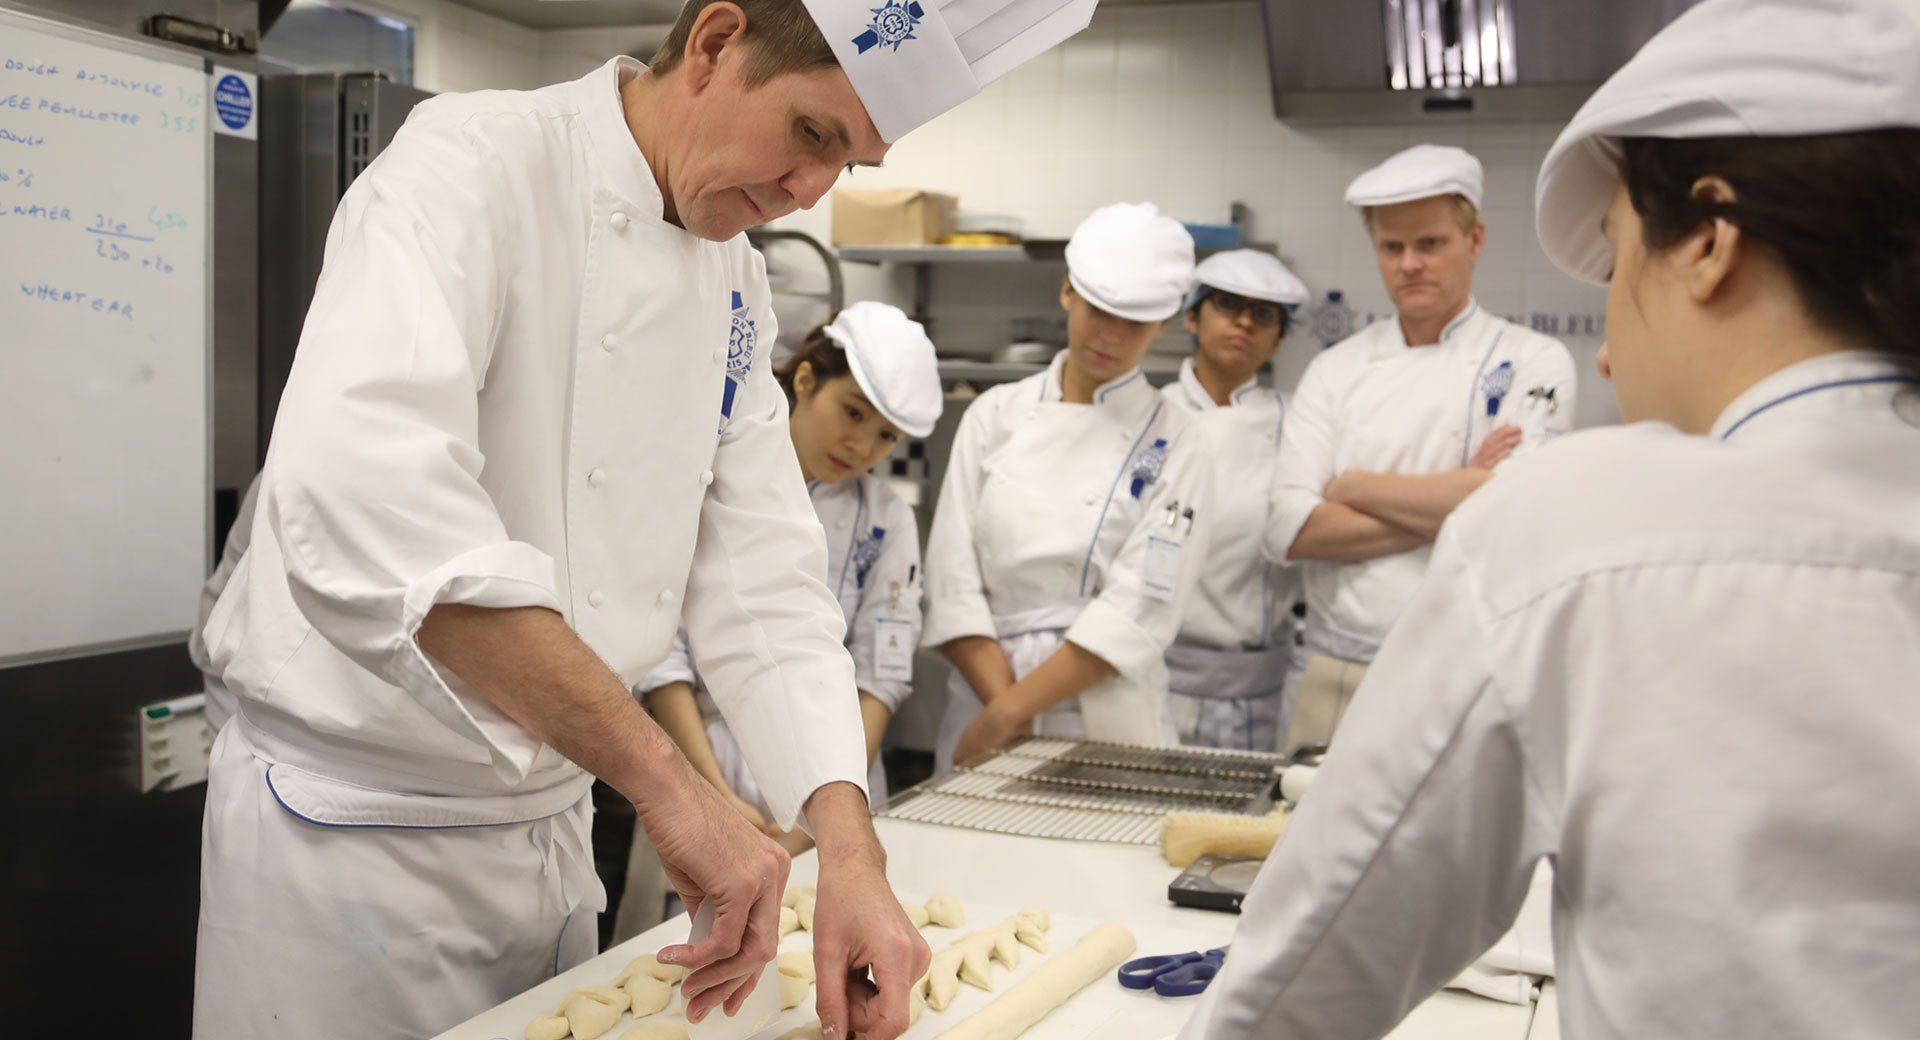 chef dominique moudart with boulangerie students at le cordon bleu london